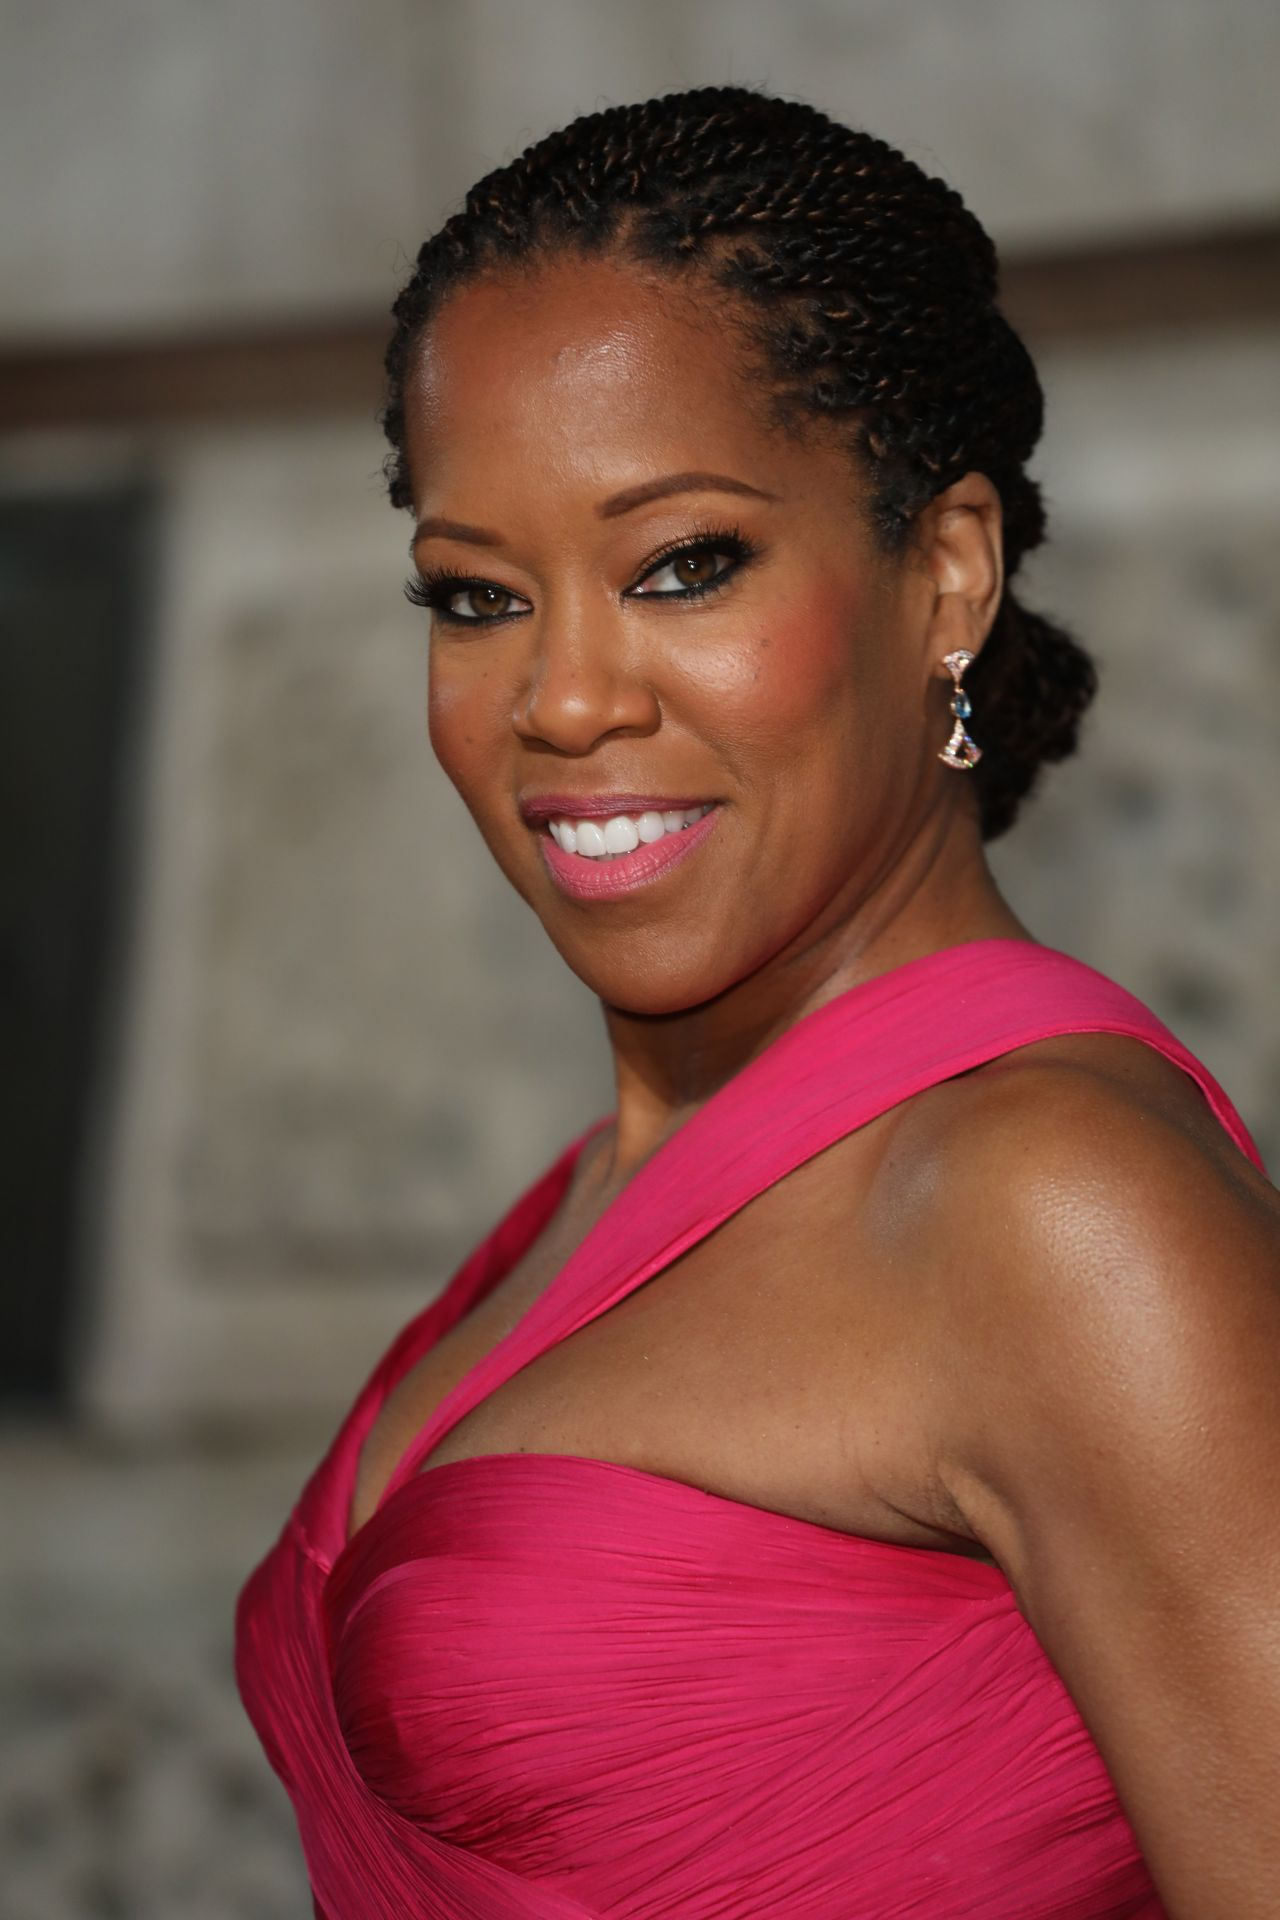 Regina King Makes History As First Black Woman Director At Venice Film Festival Women Of Rubies